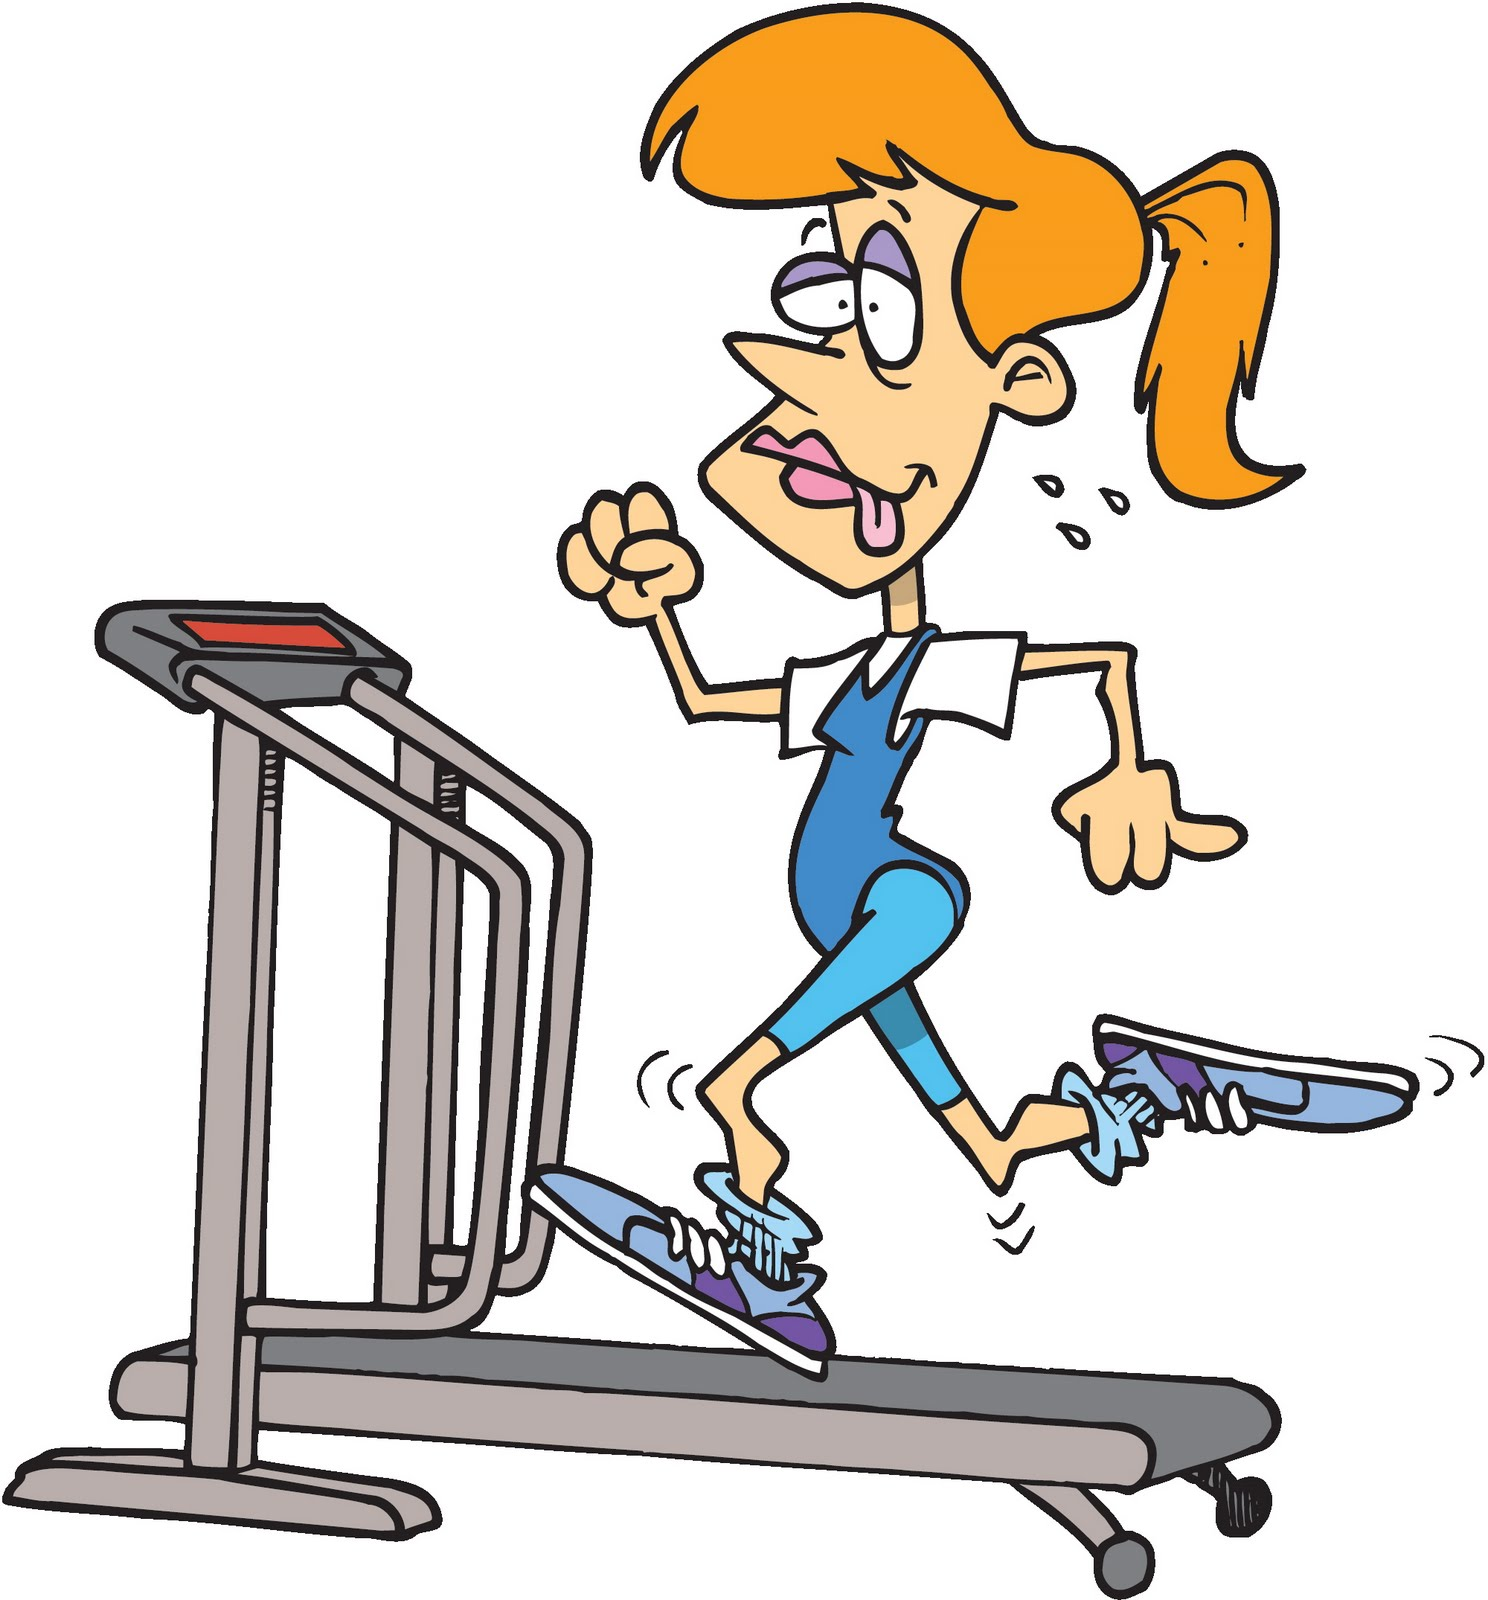 Exercise Cartoon Images | Free download best Exercise Cartoon Images ... graphic download